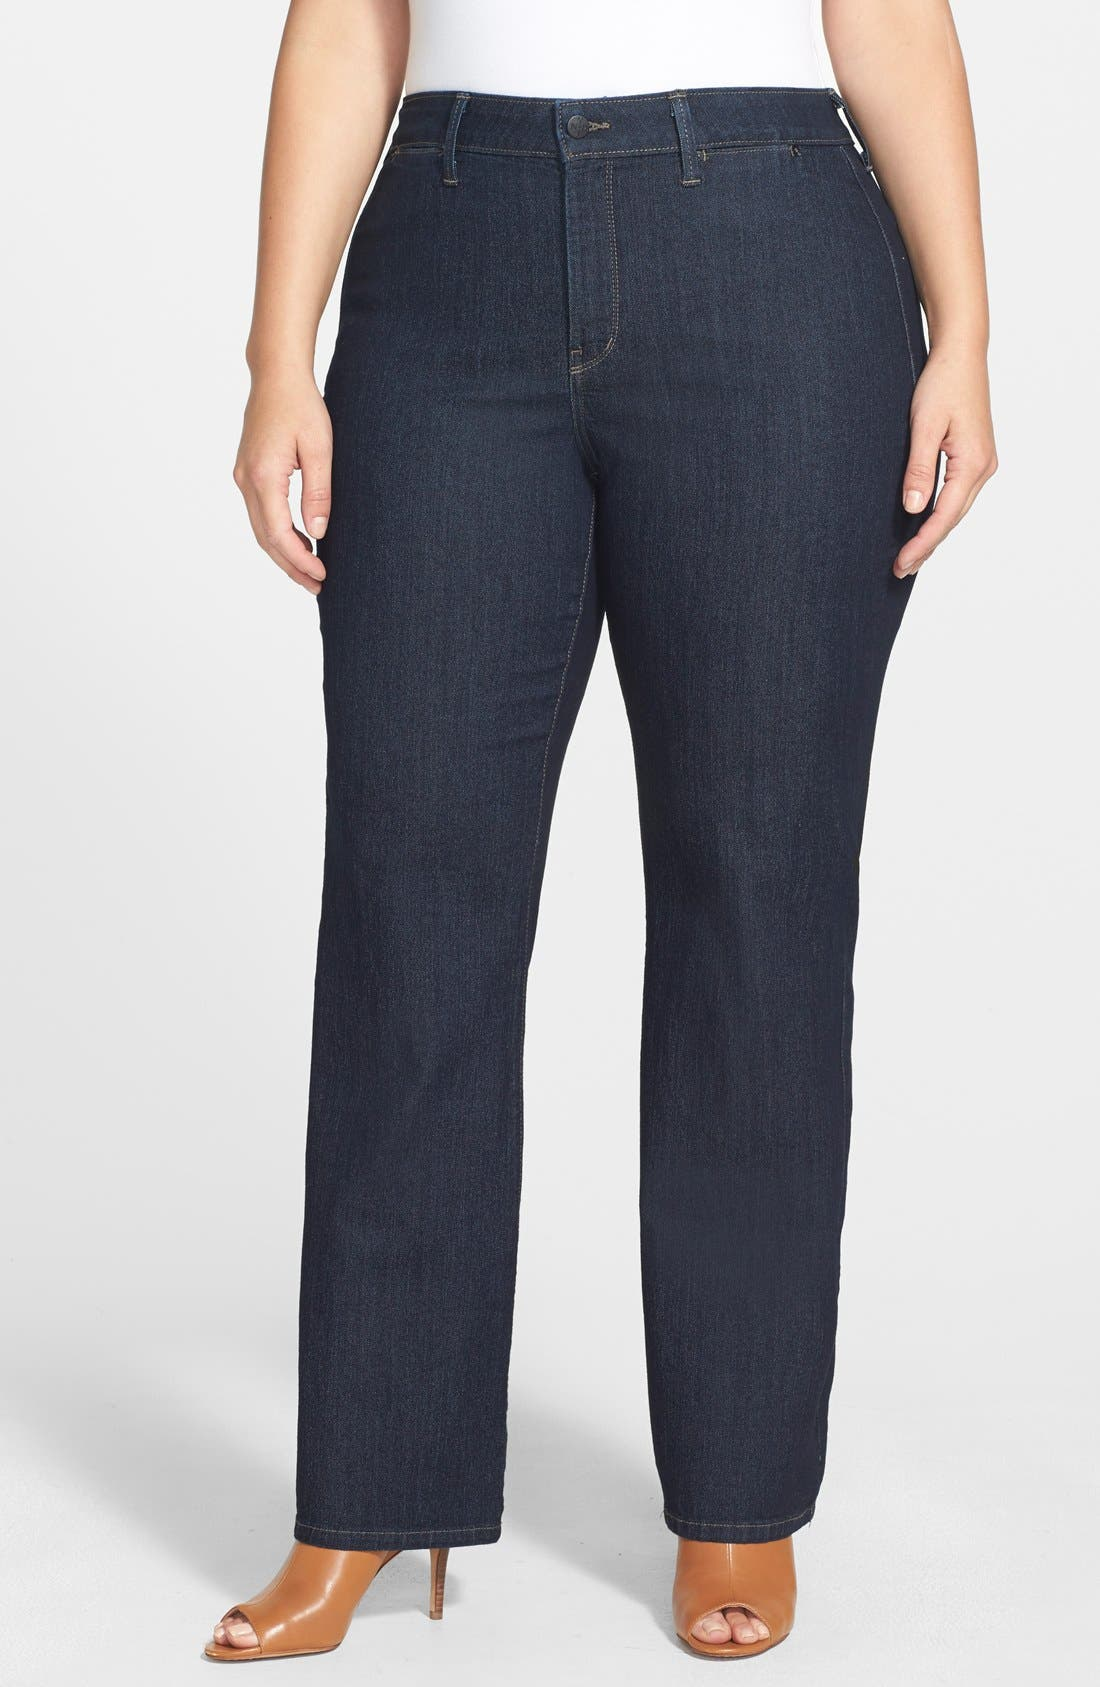 NYDJ 'Isabella' Stretch Trouser Jeans (Dark Enzyme) (Plus Size)